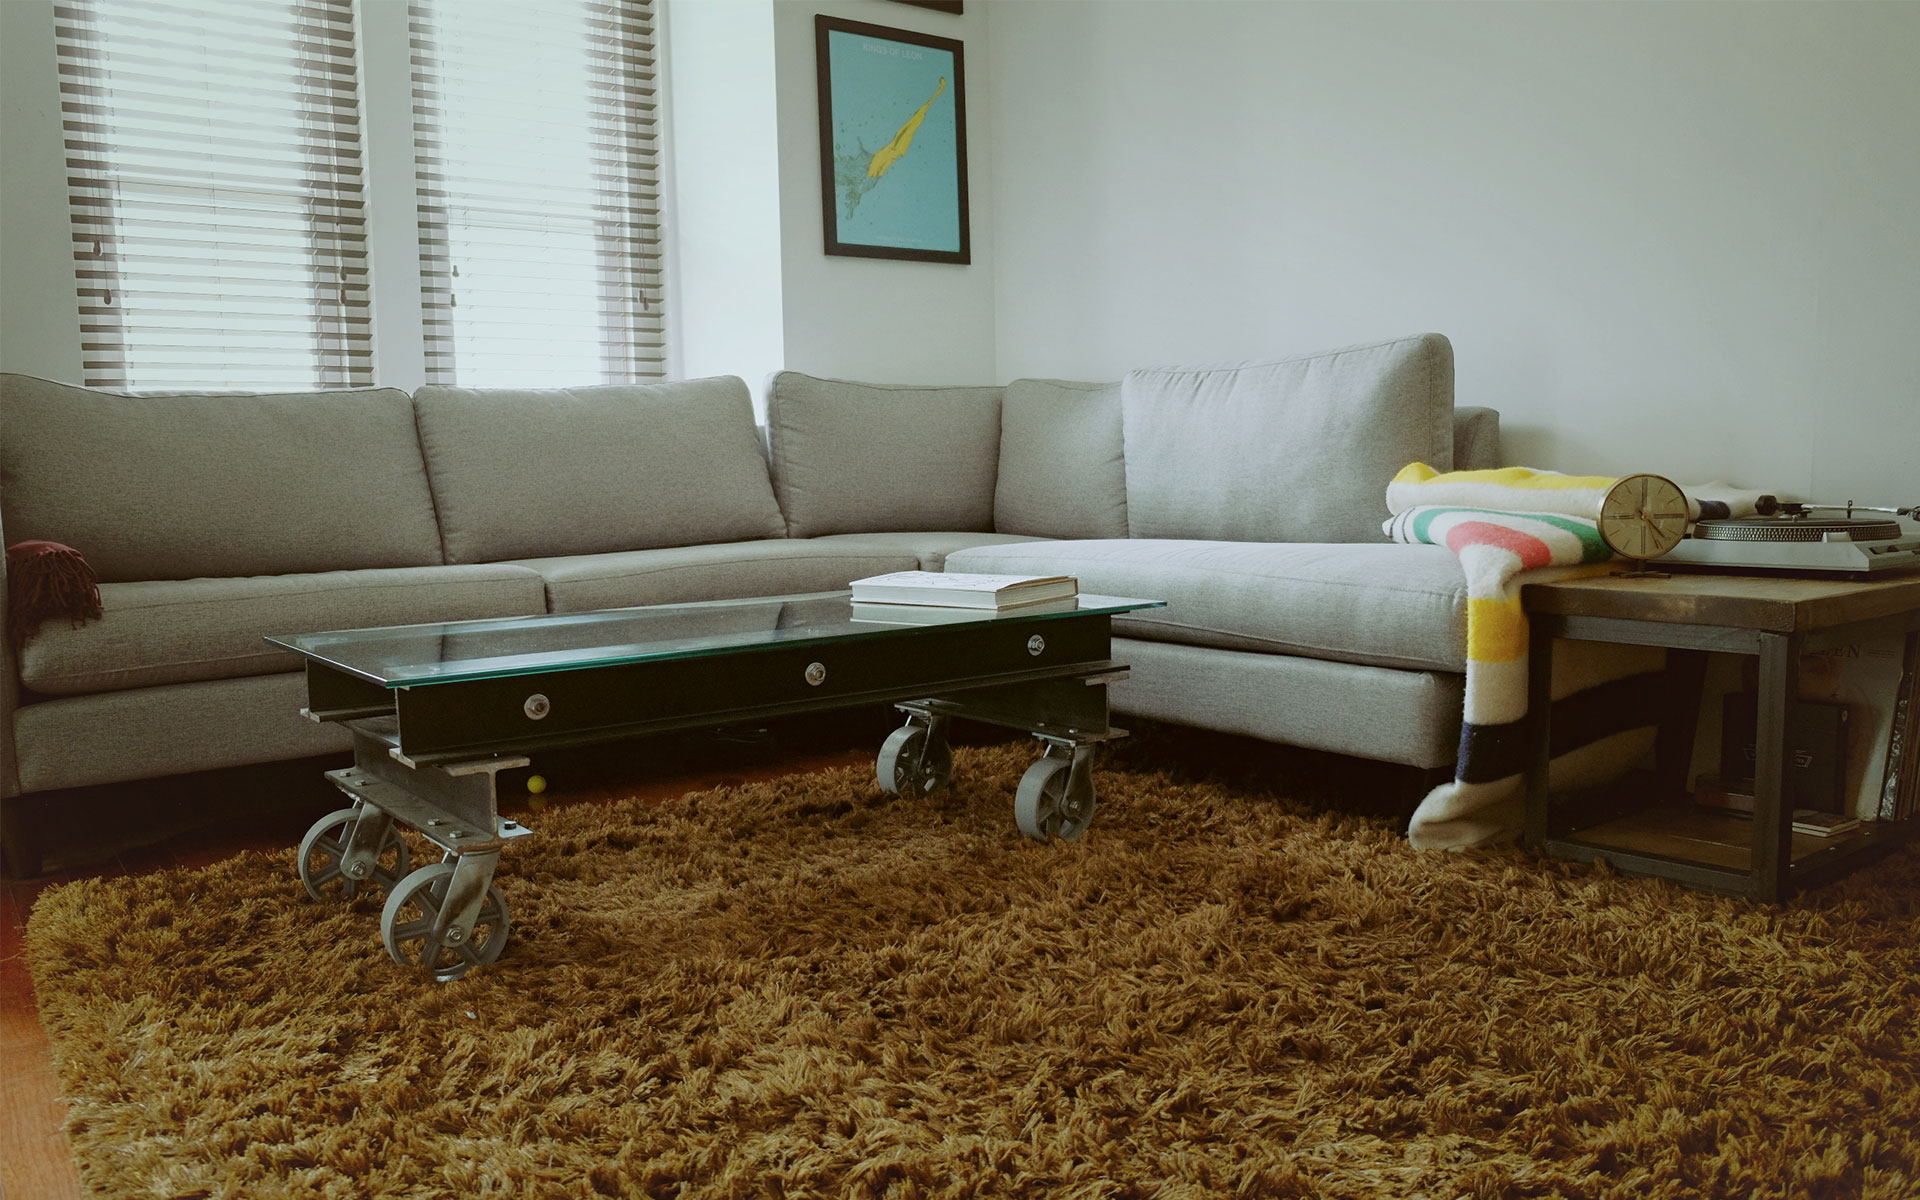 sofas hamilton ontario wooden legs for oak 43 alchemy  modern design driven furniture made from